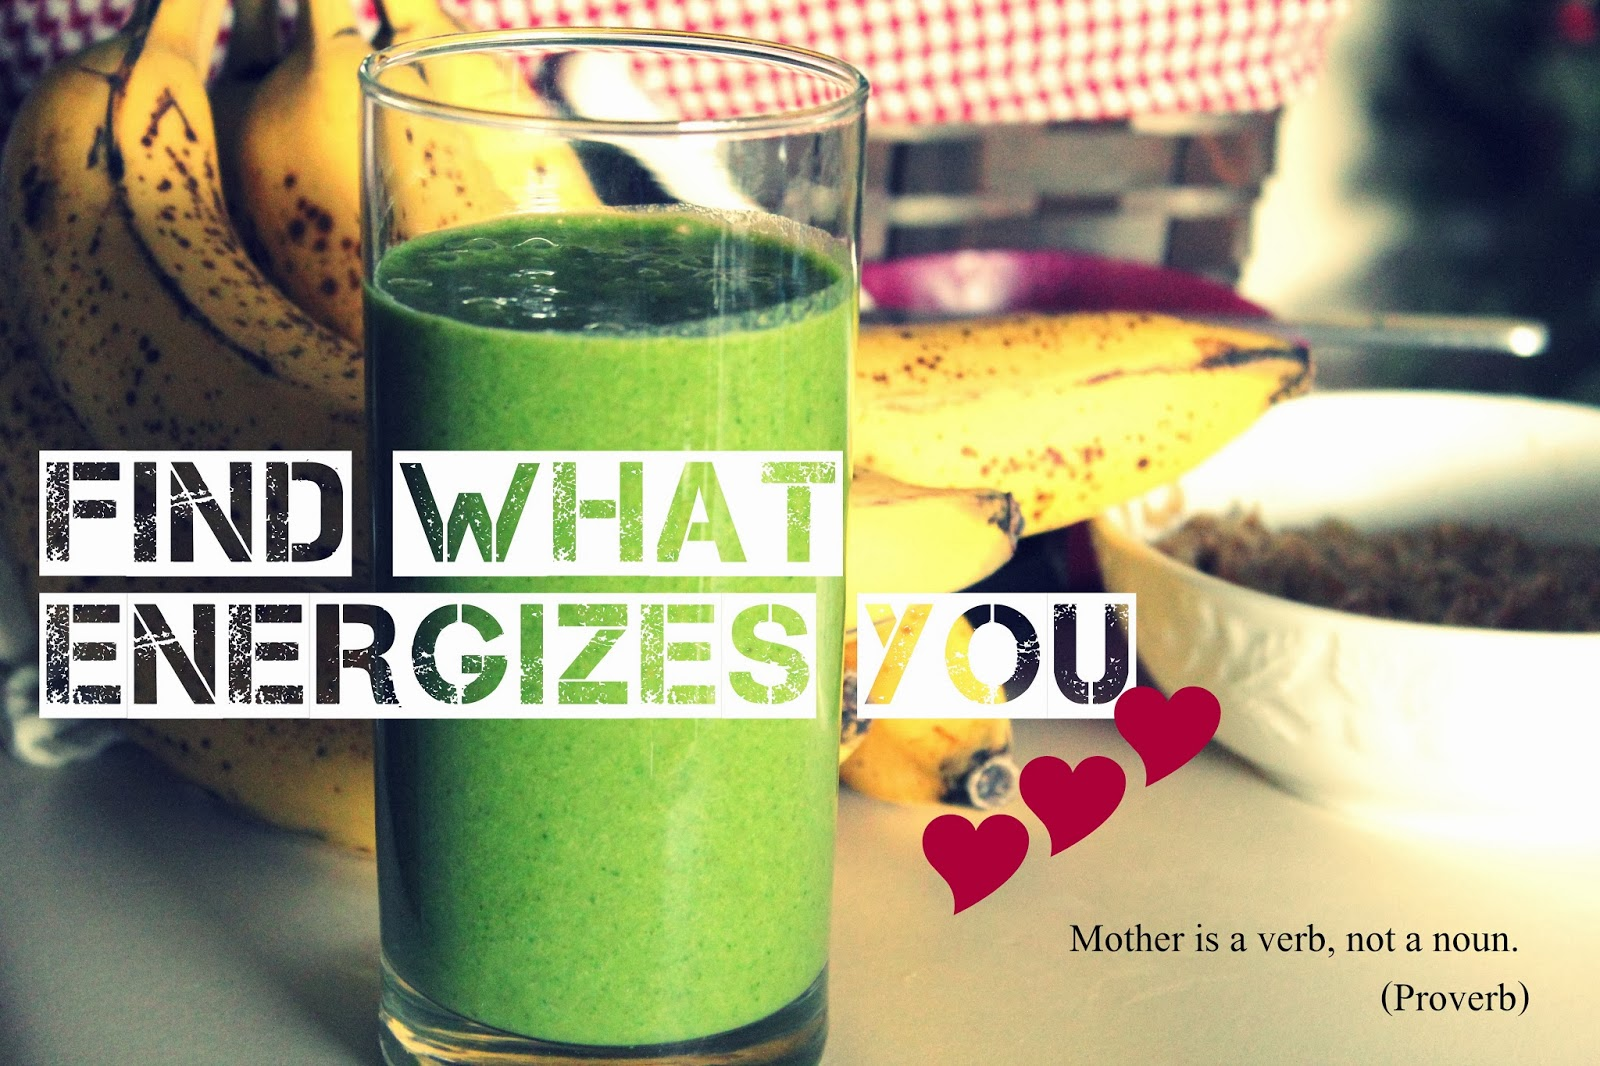 You will need bananas, kale, ice, and almond milk to make this smoothie.